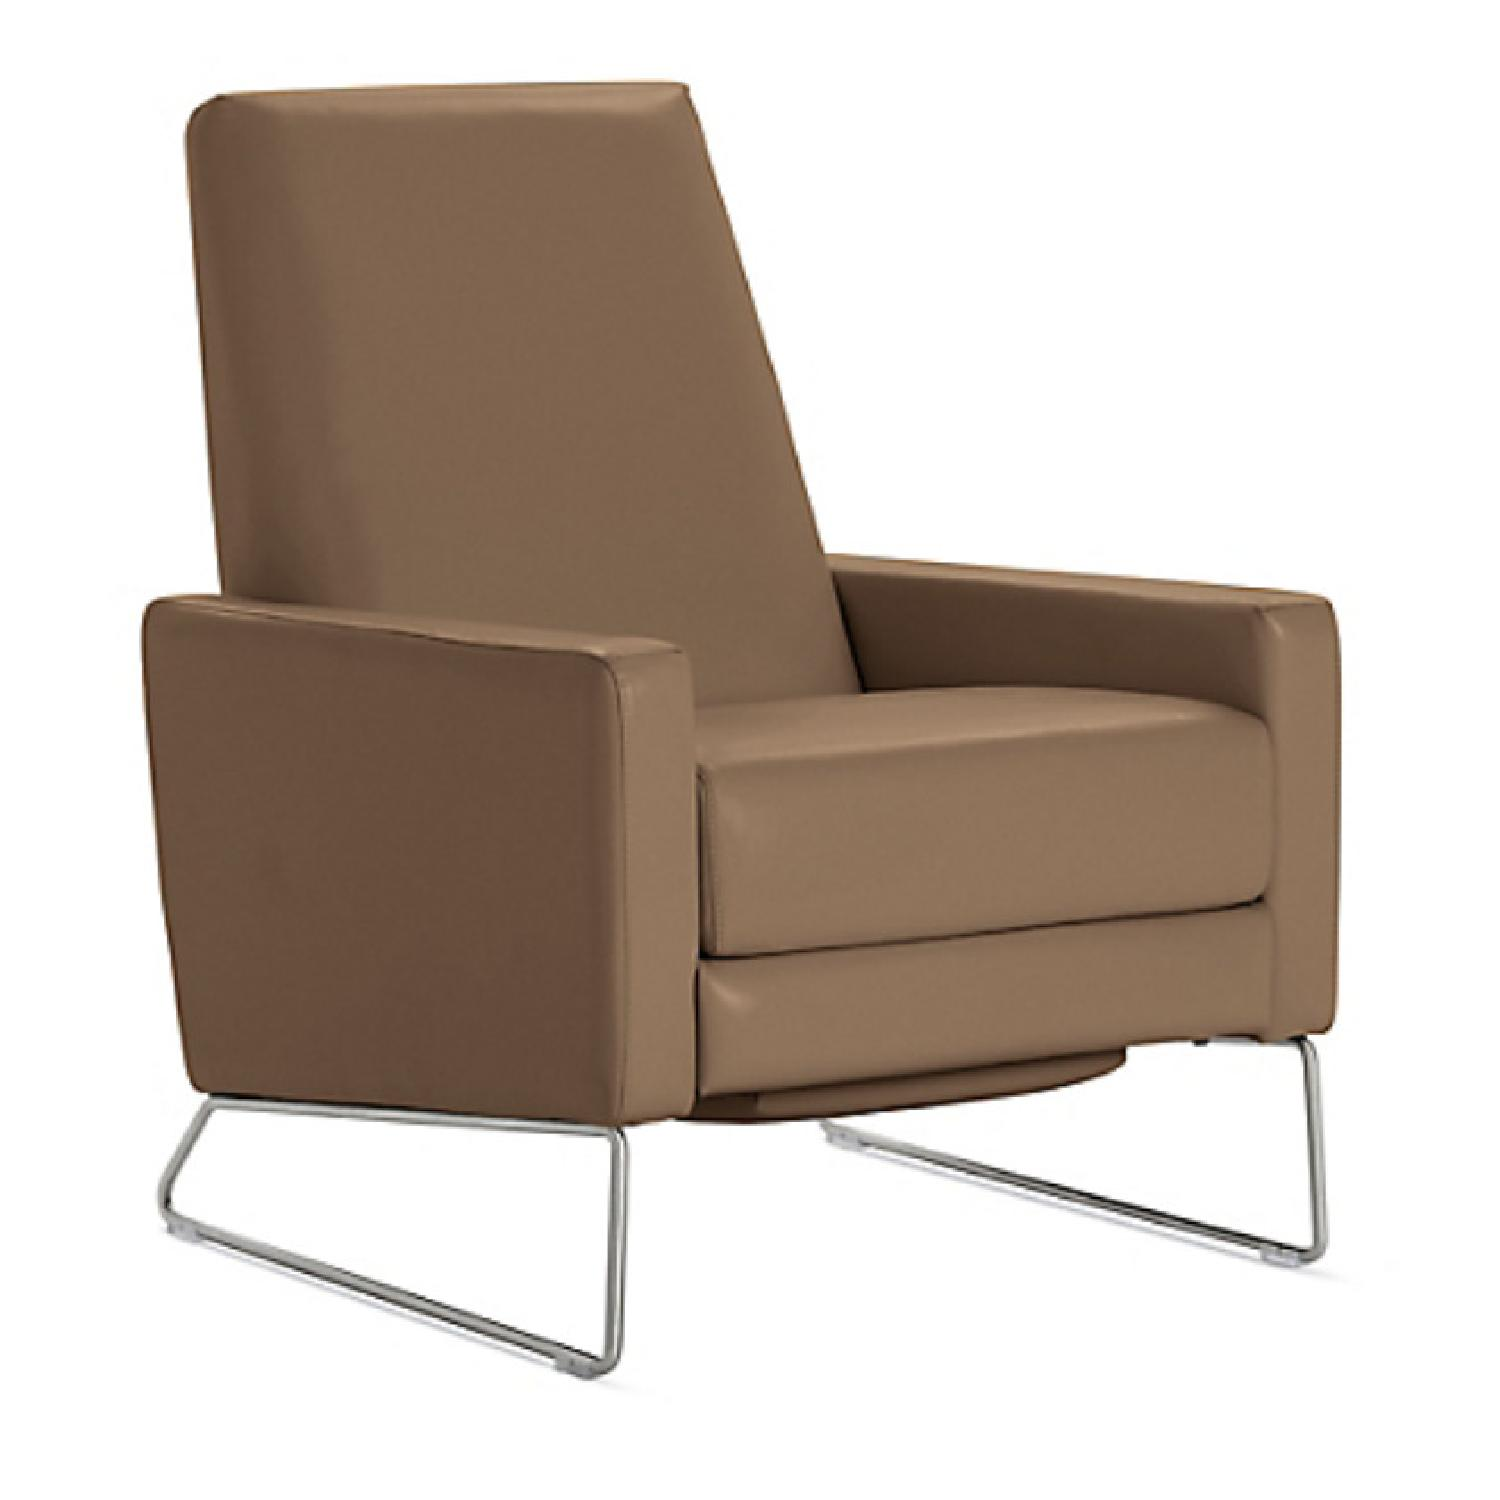 Design Within Reach Flight Recliner in Vienna Clay Leather - image-0